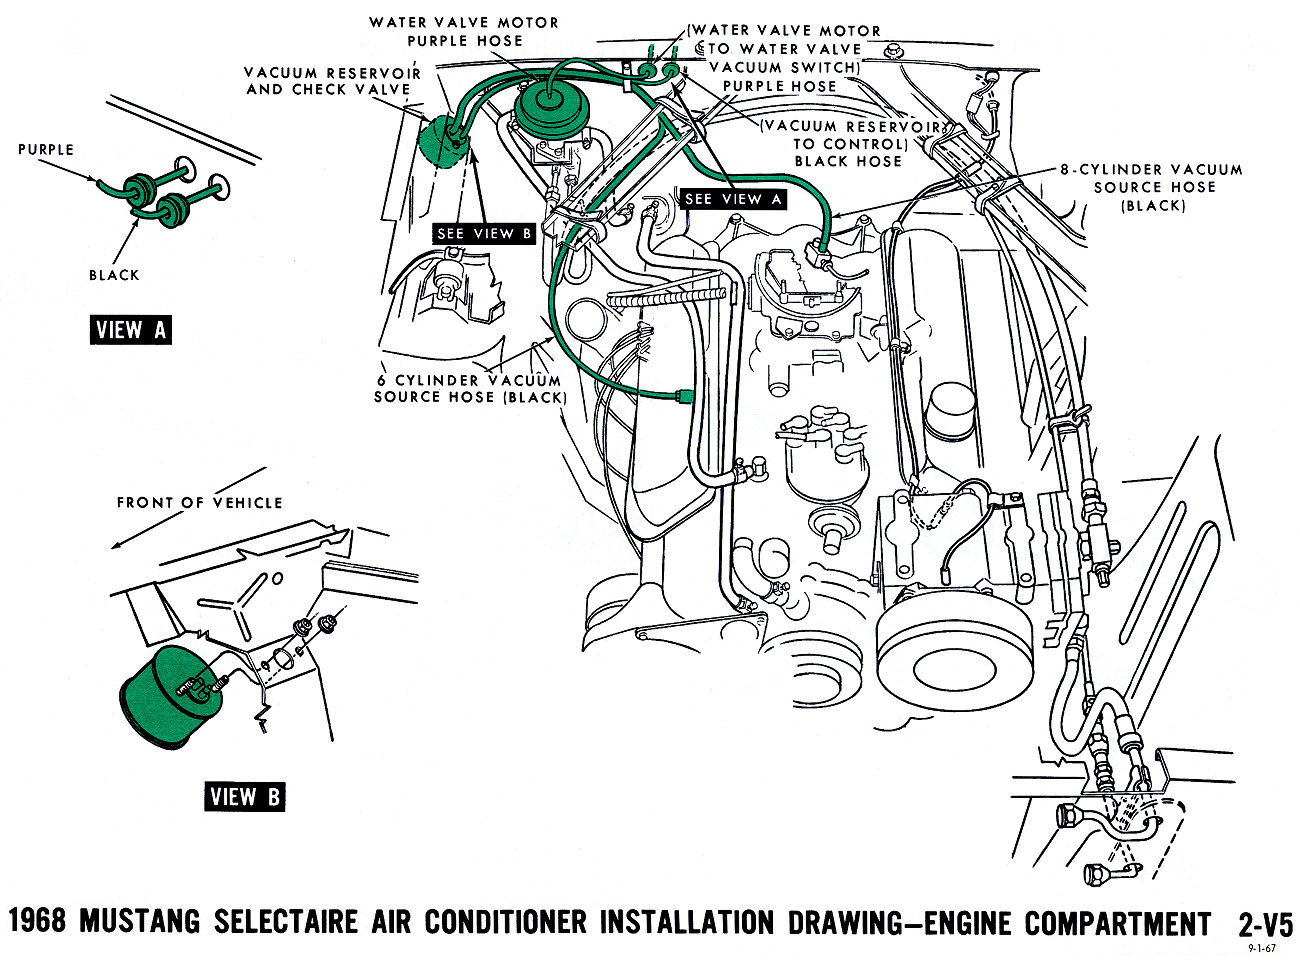 1968 mustang vacuum diagrams evolving software 1970 mustang wiring diagram for ignition coil 1969 Mustang Wiring Diagram